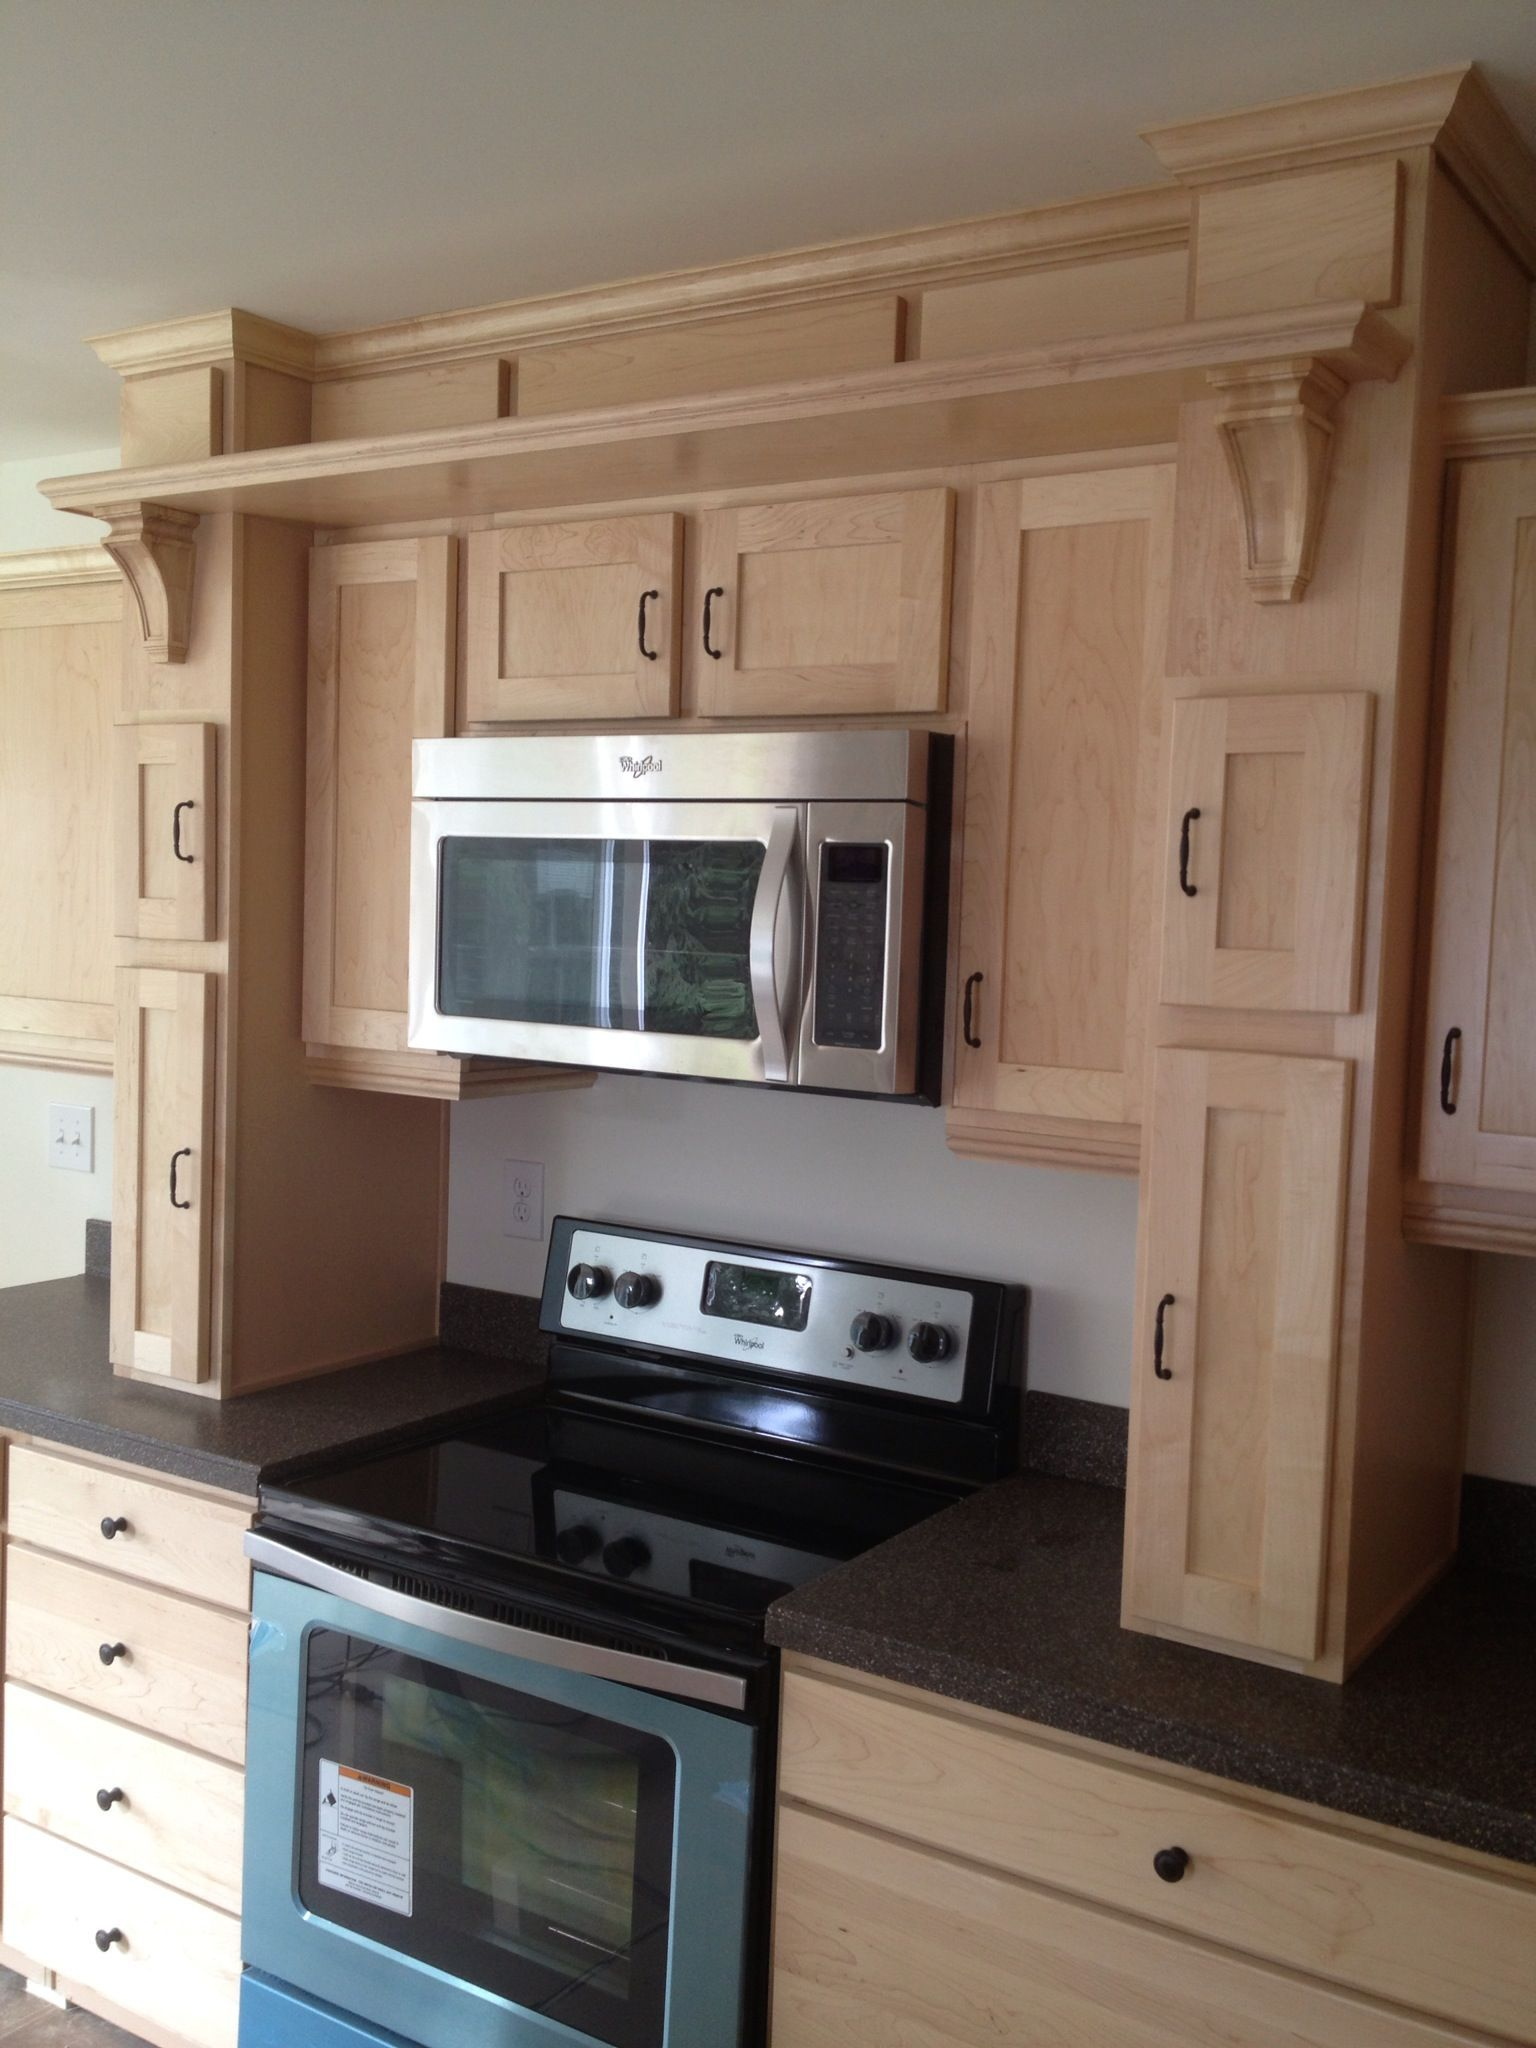 Great hearth kitchen with microwave option! #builtinfanoven | Wall ...